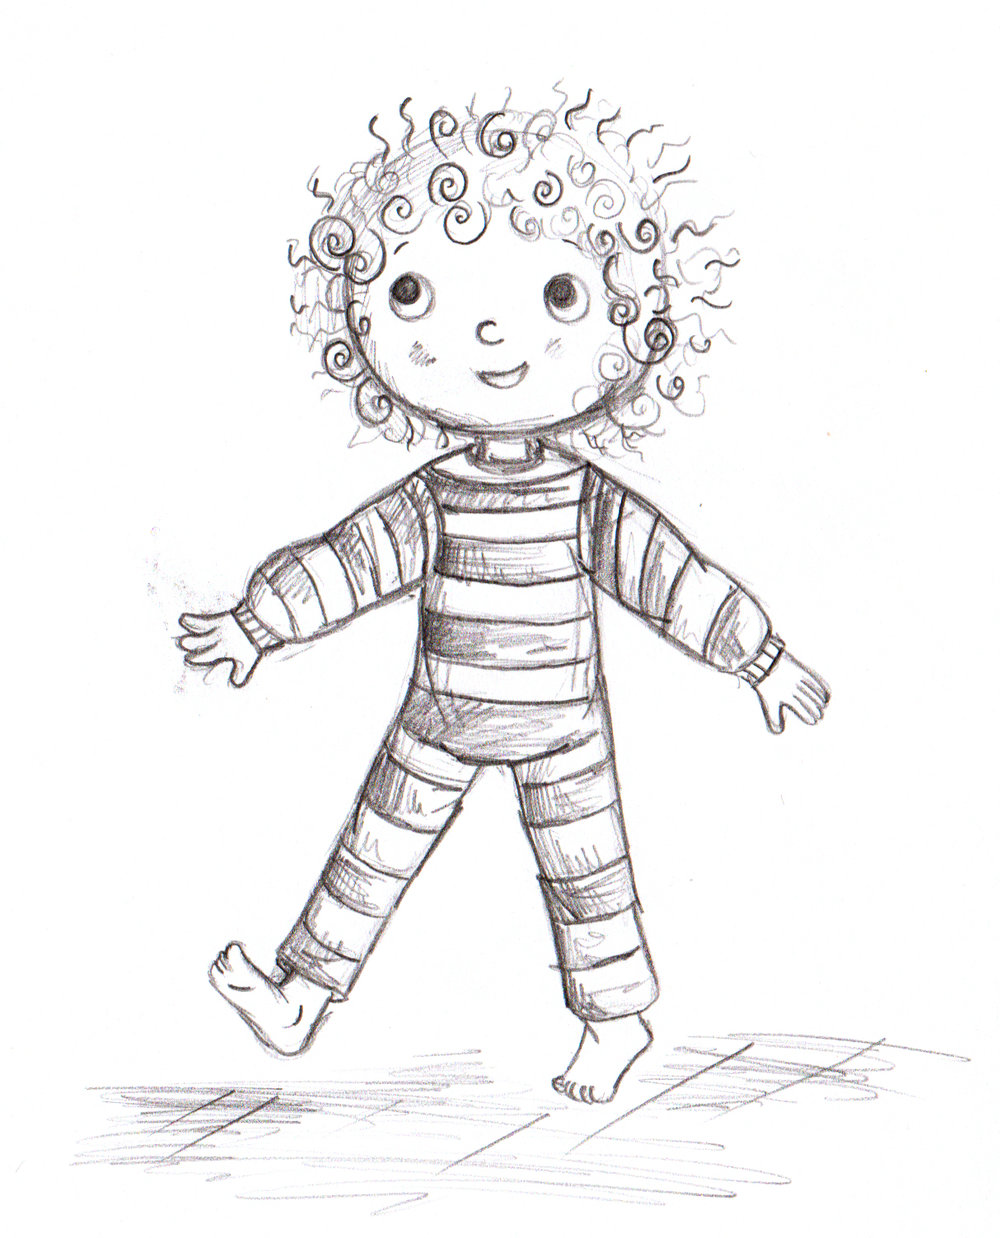 Curly_Hair_Girl_Sketch_Kirsty_Oxley_Illustration.jpg